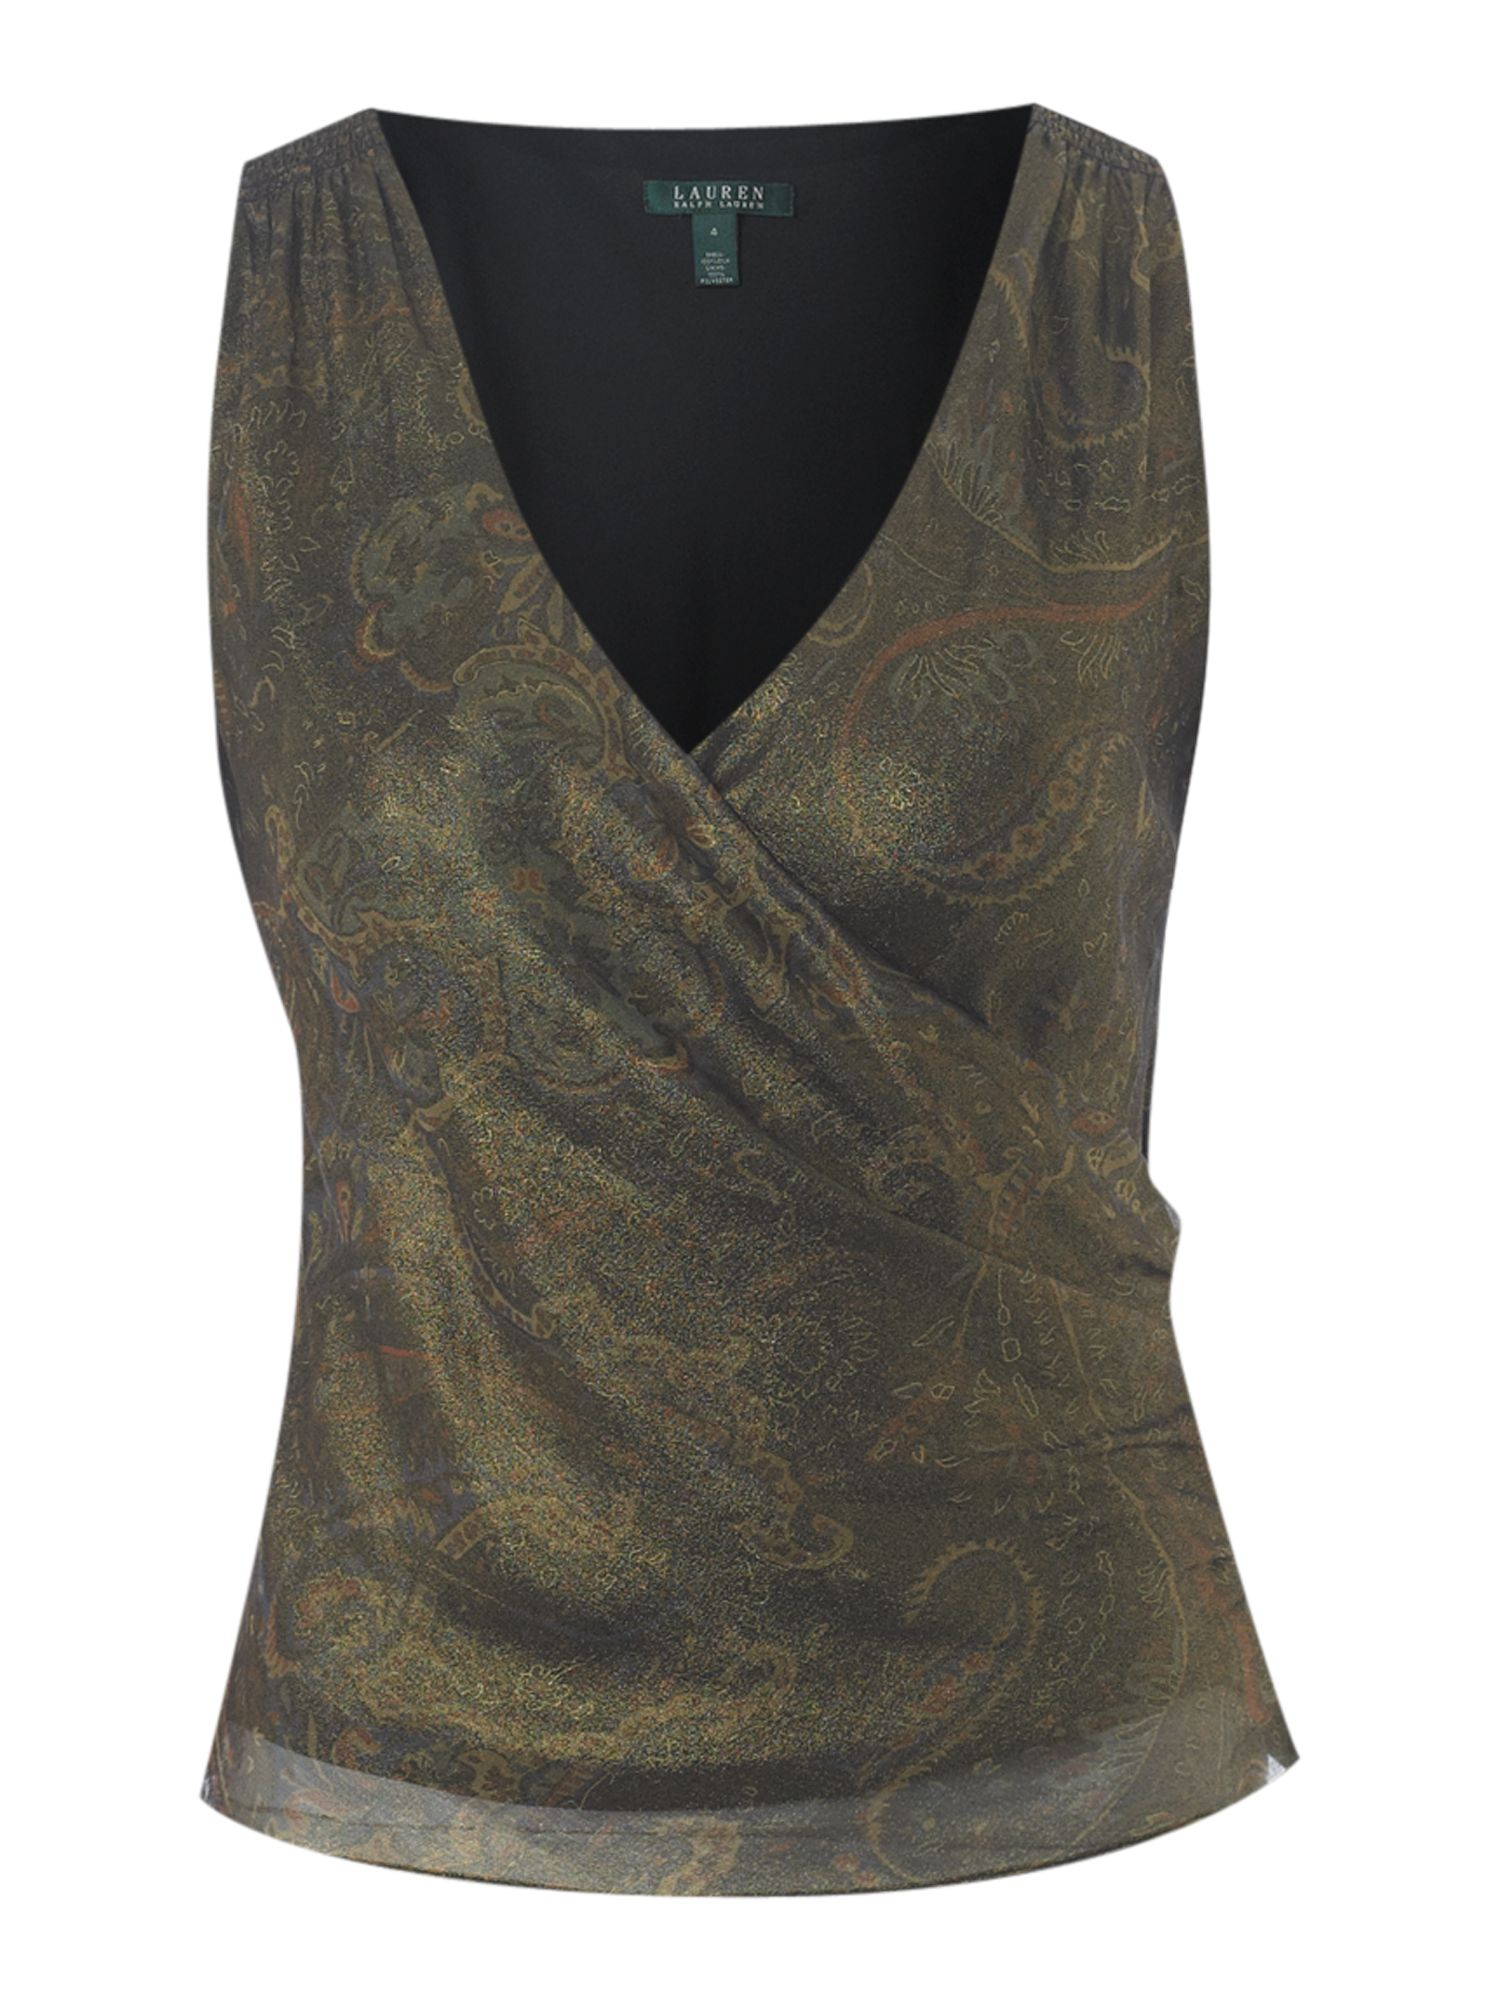 Lauren by Ralph Lauren Silk sleeveless metallic blouse - Multi-Coloured product image